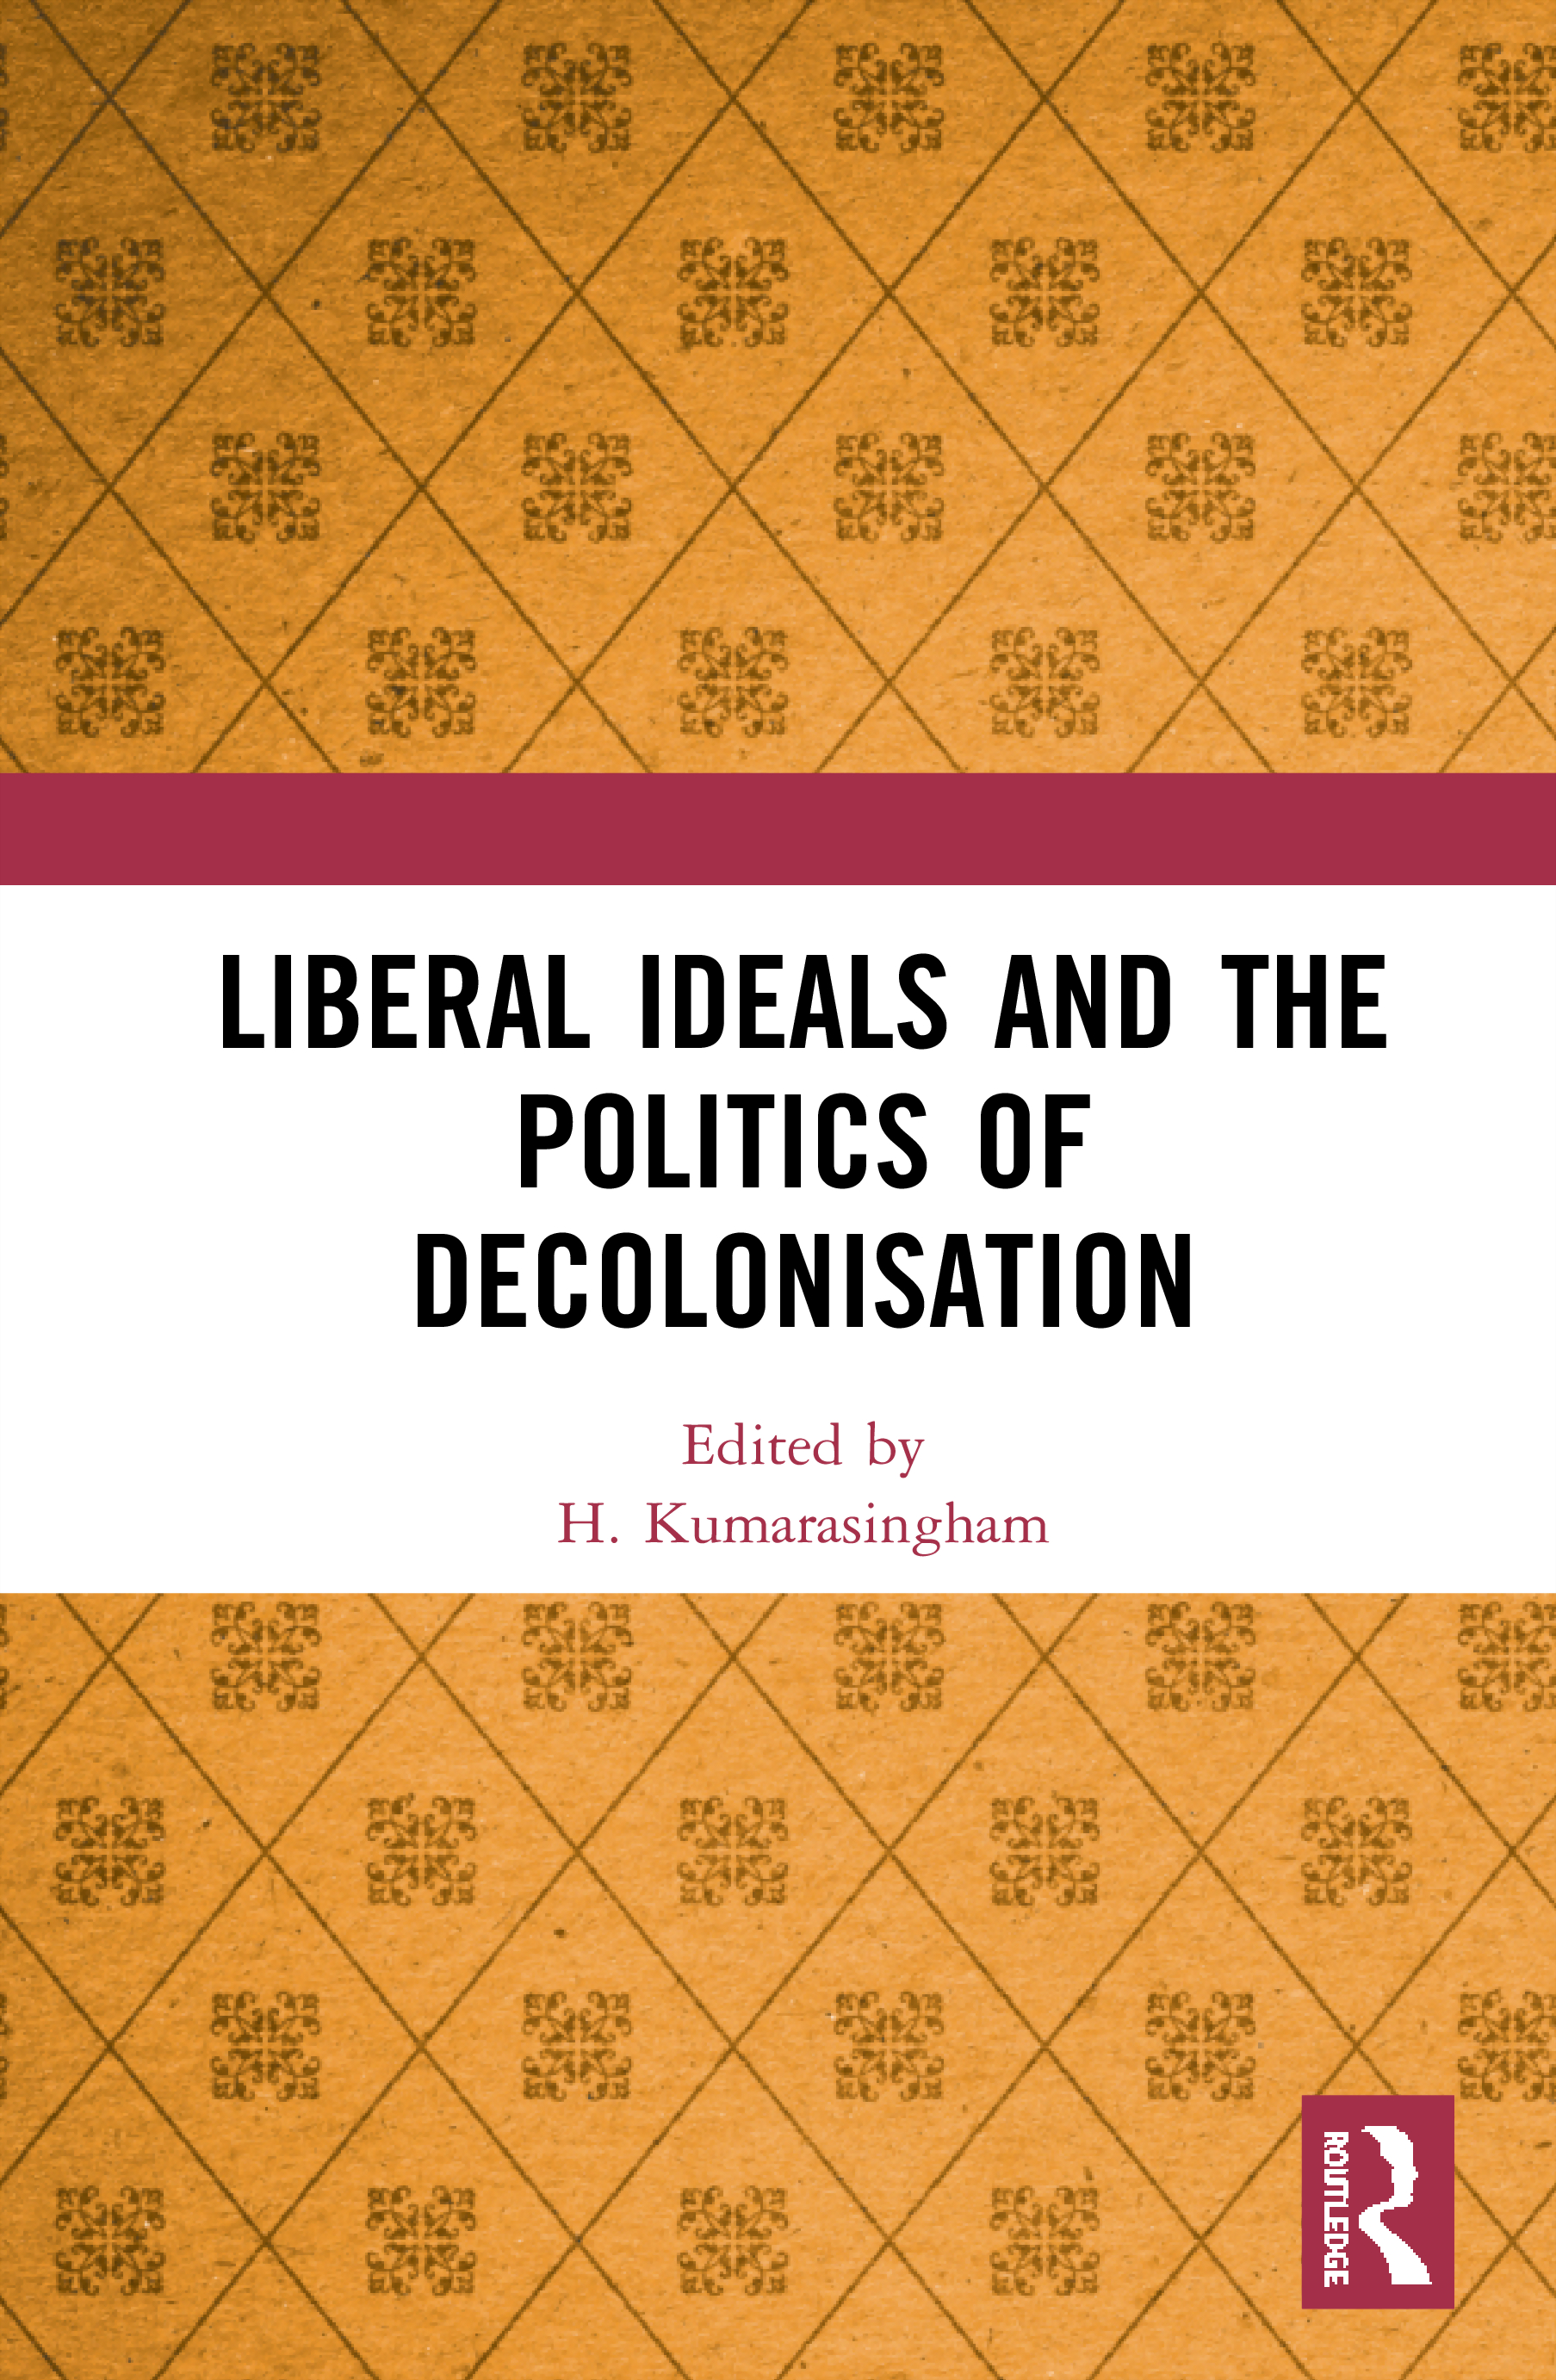 Liberal Ideals and the Politics of Decolonisation book cover